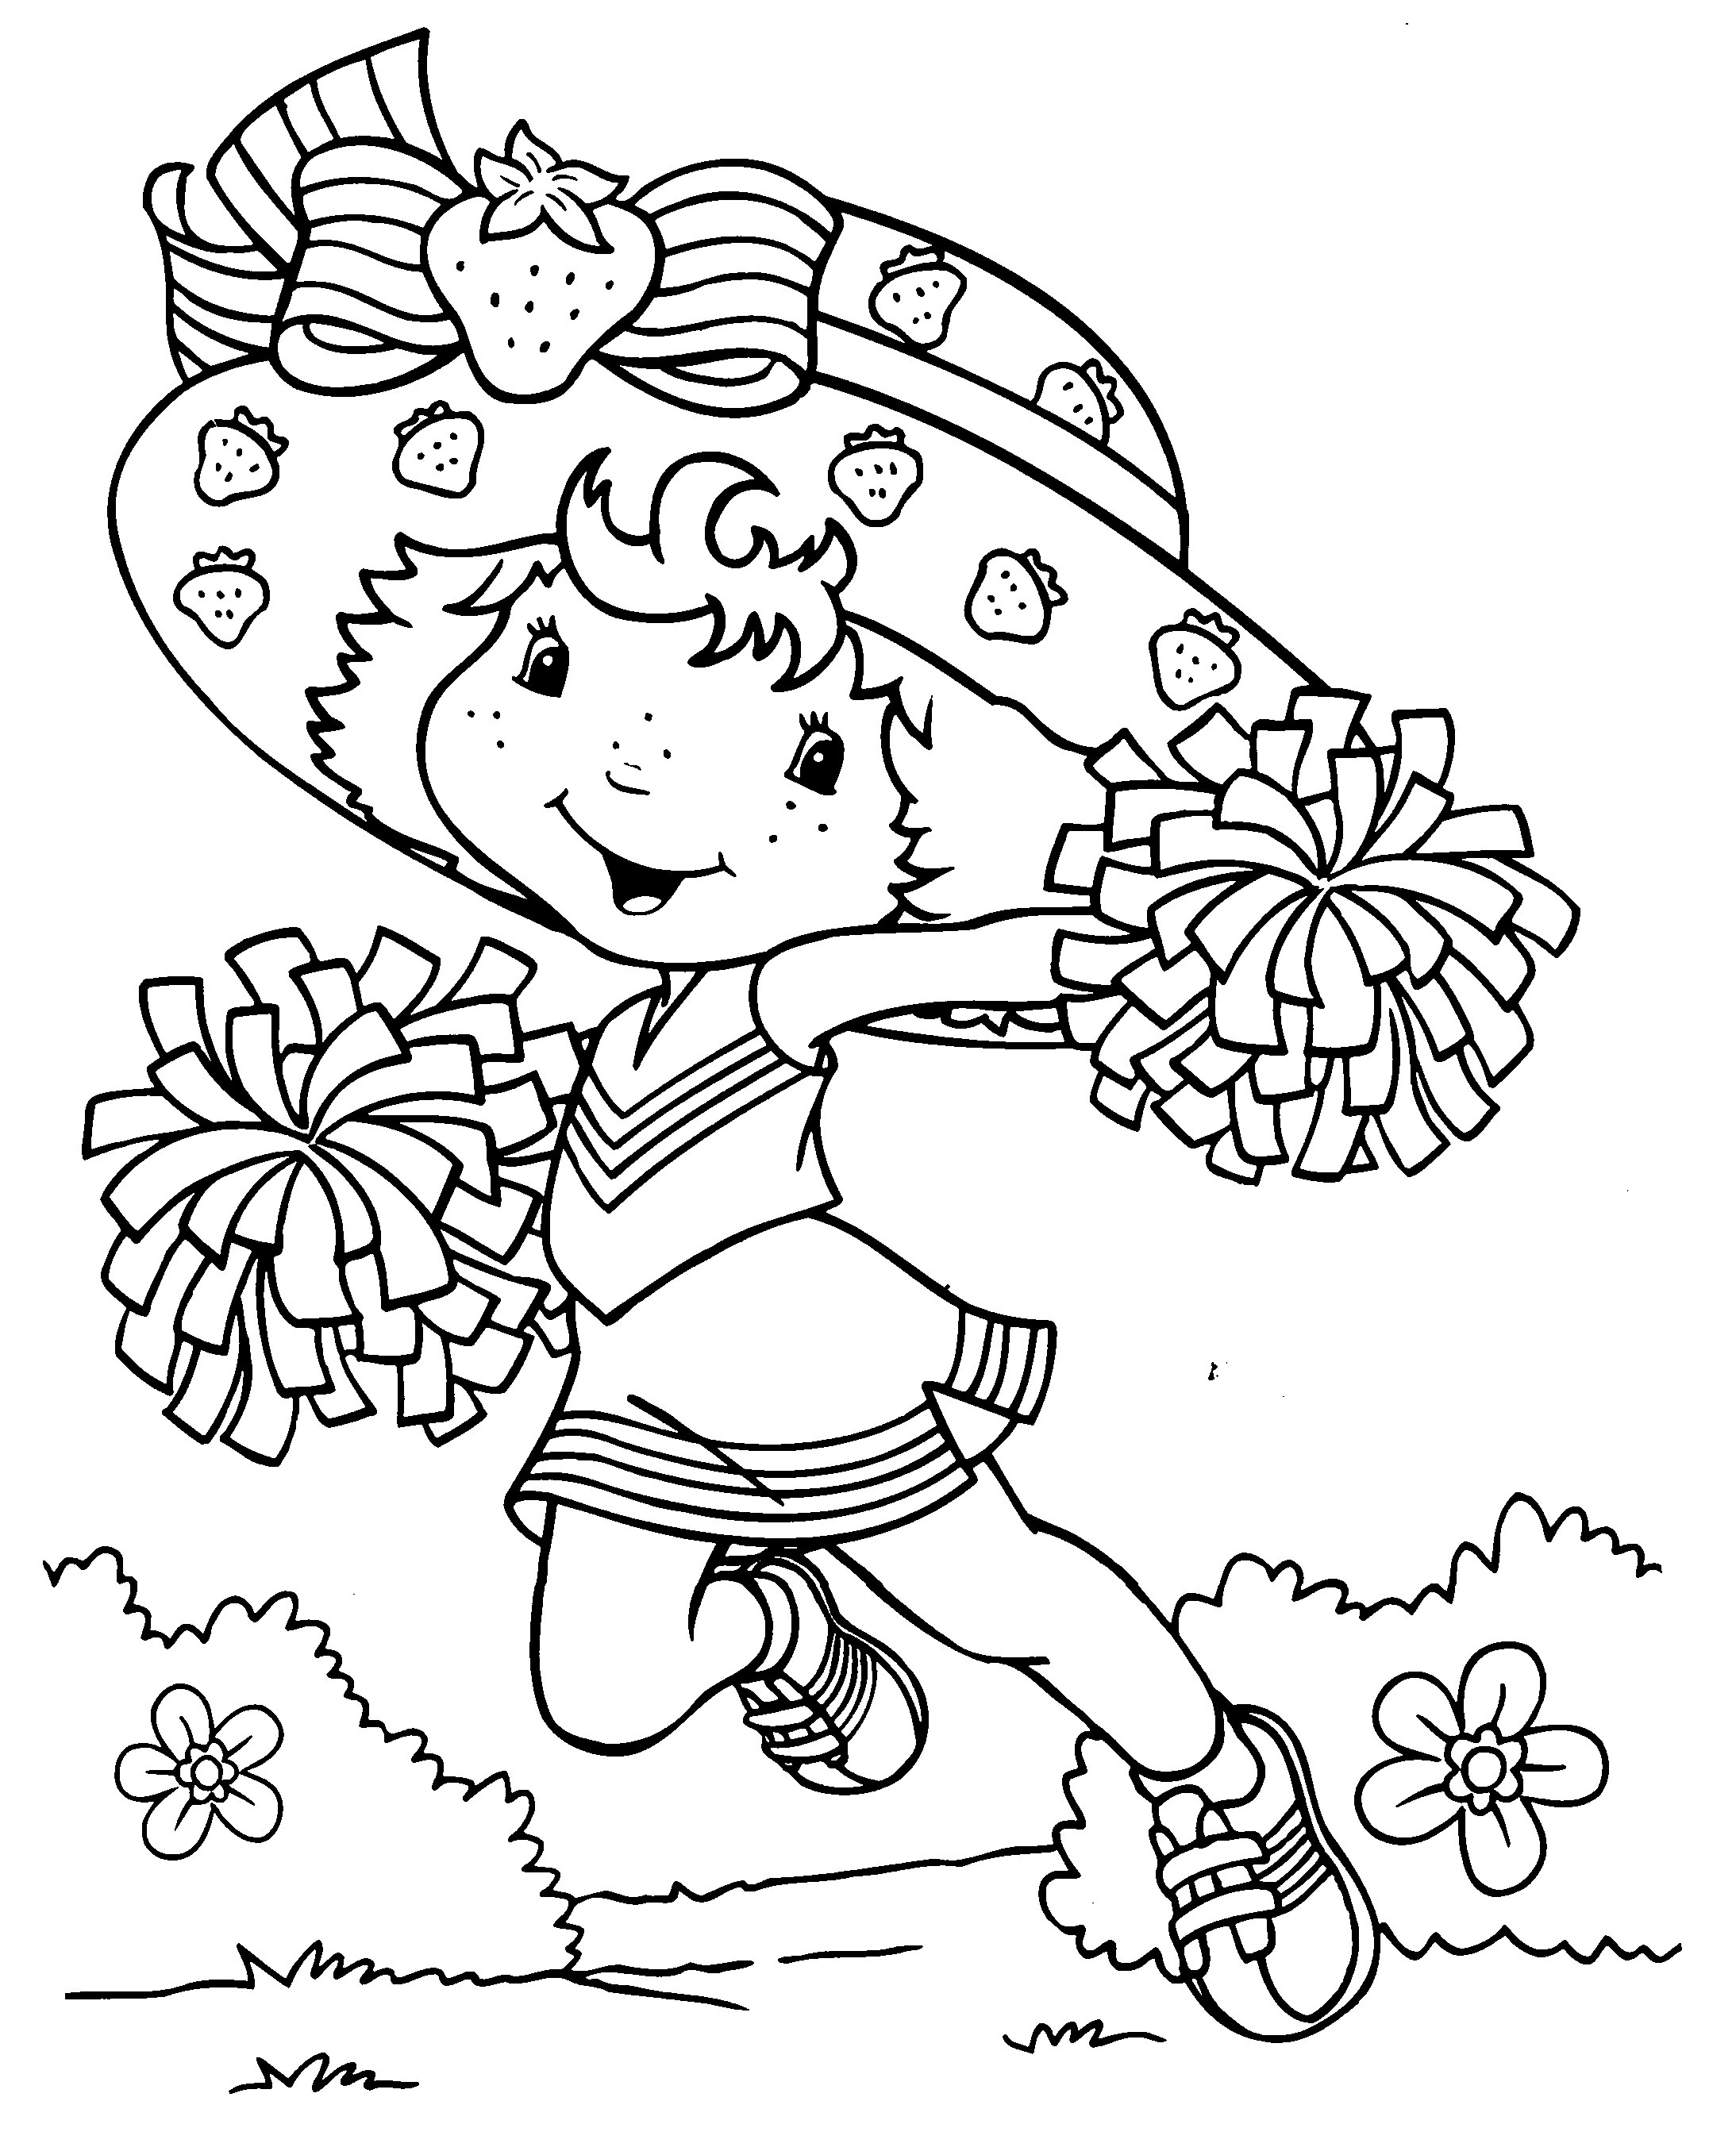 Coloring Pages For Girls (10) - Coloring Kids